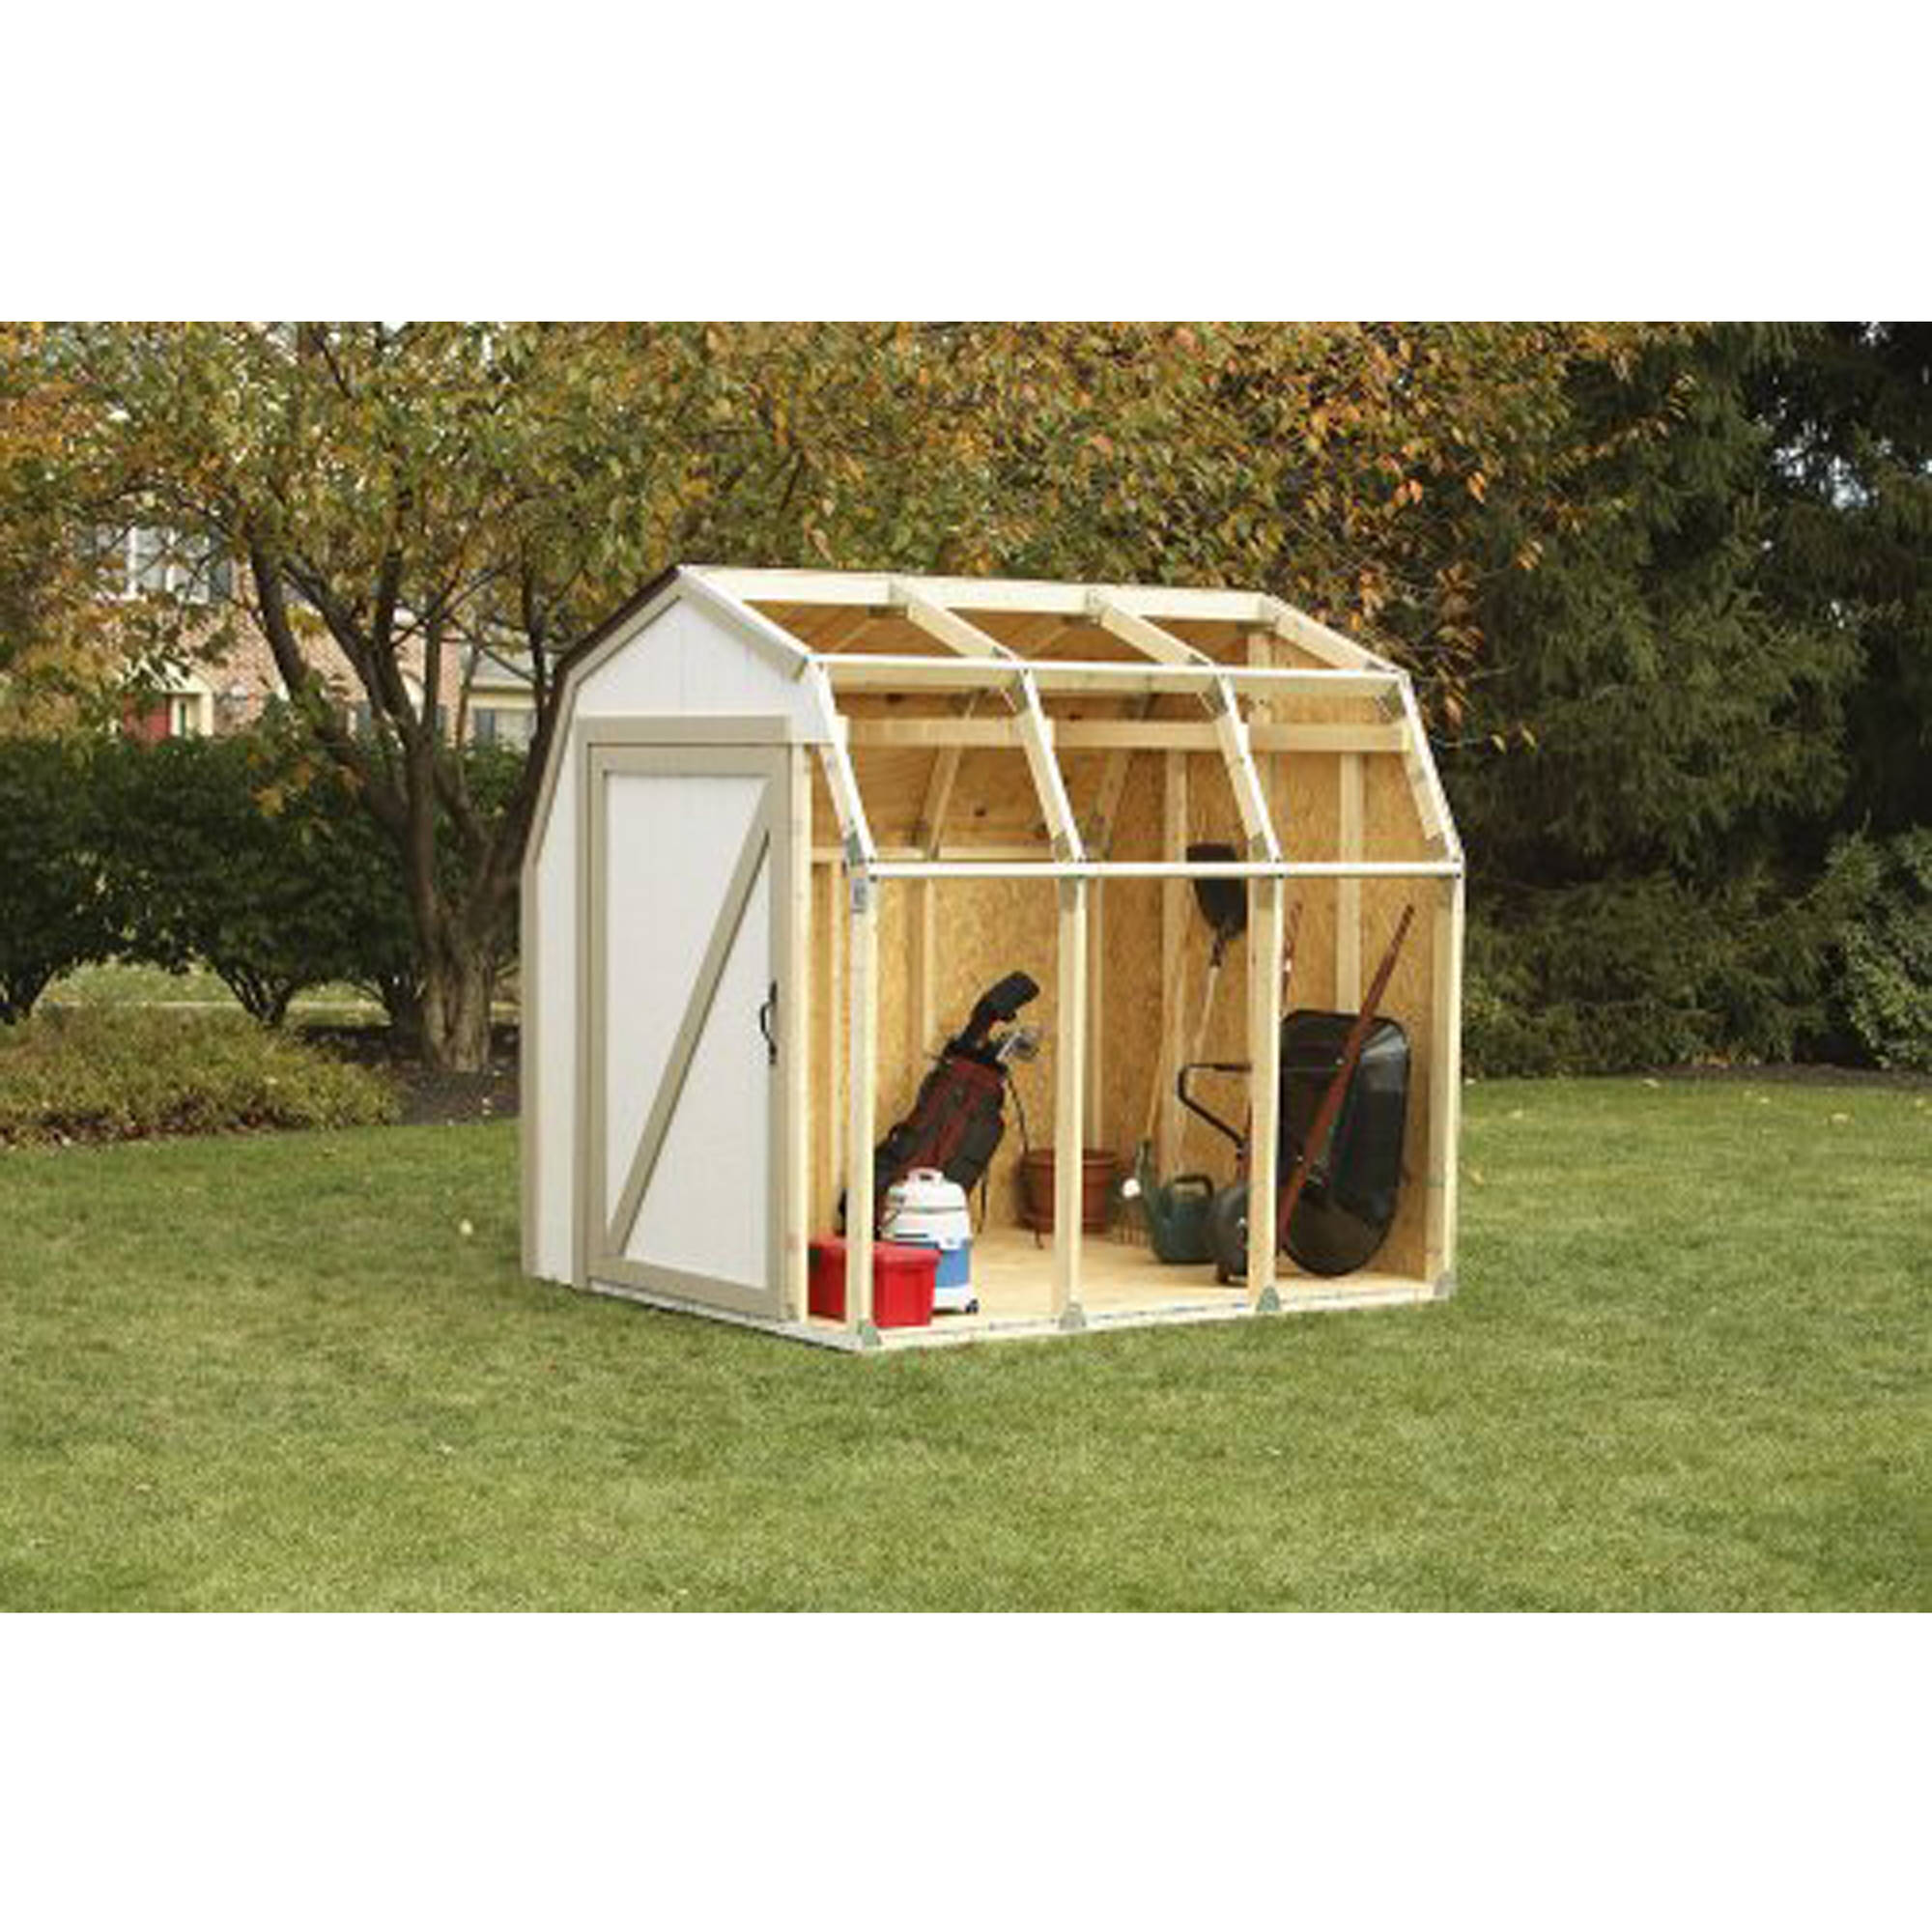 2x4 Basics Shed Kit with Barn Style Roof